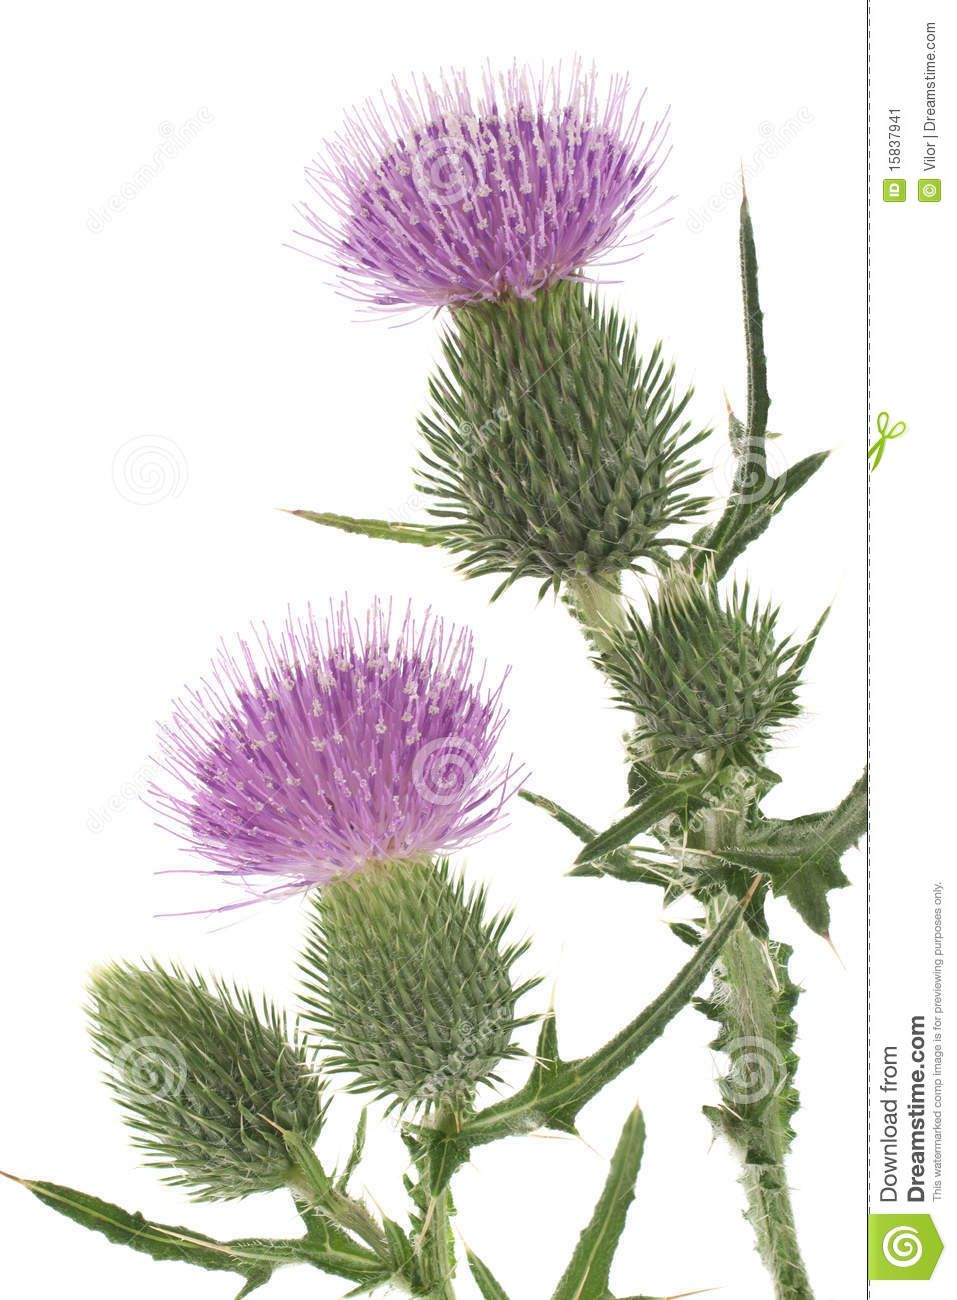 how to paint scottish heather Google Search Flower